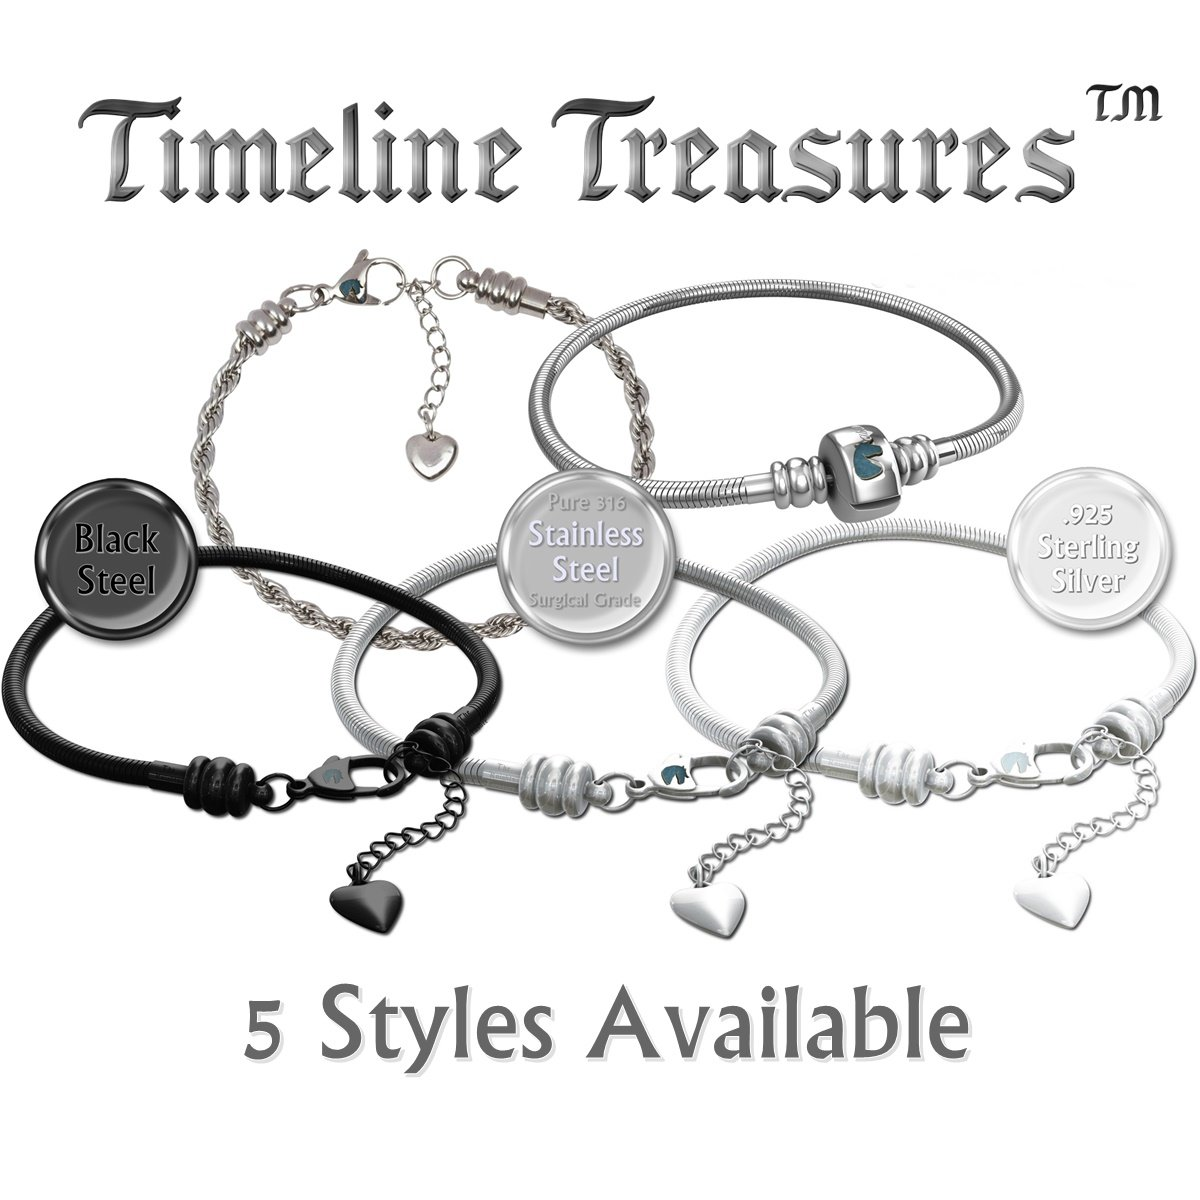 Timeline Treasures European Charm Bracelet For Women and Girls Bead Charms, Stainless Steel Snake Chain, Claw 7.5 Inch by Timeline Treasures (Image #7)